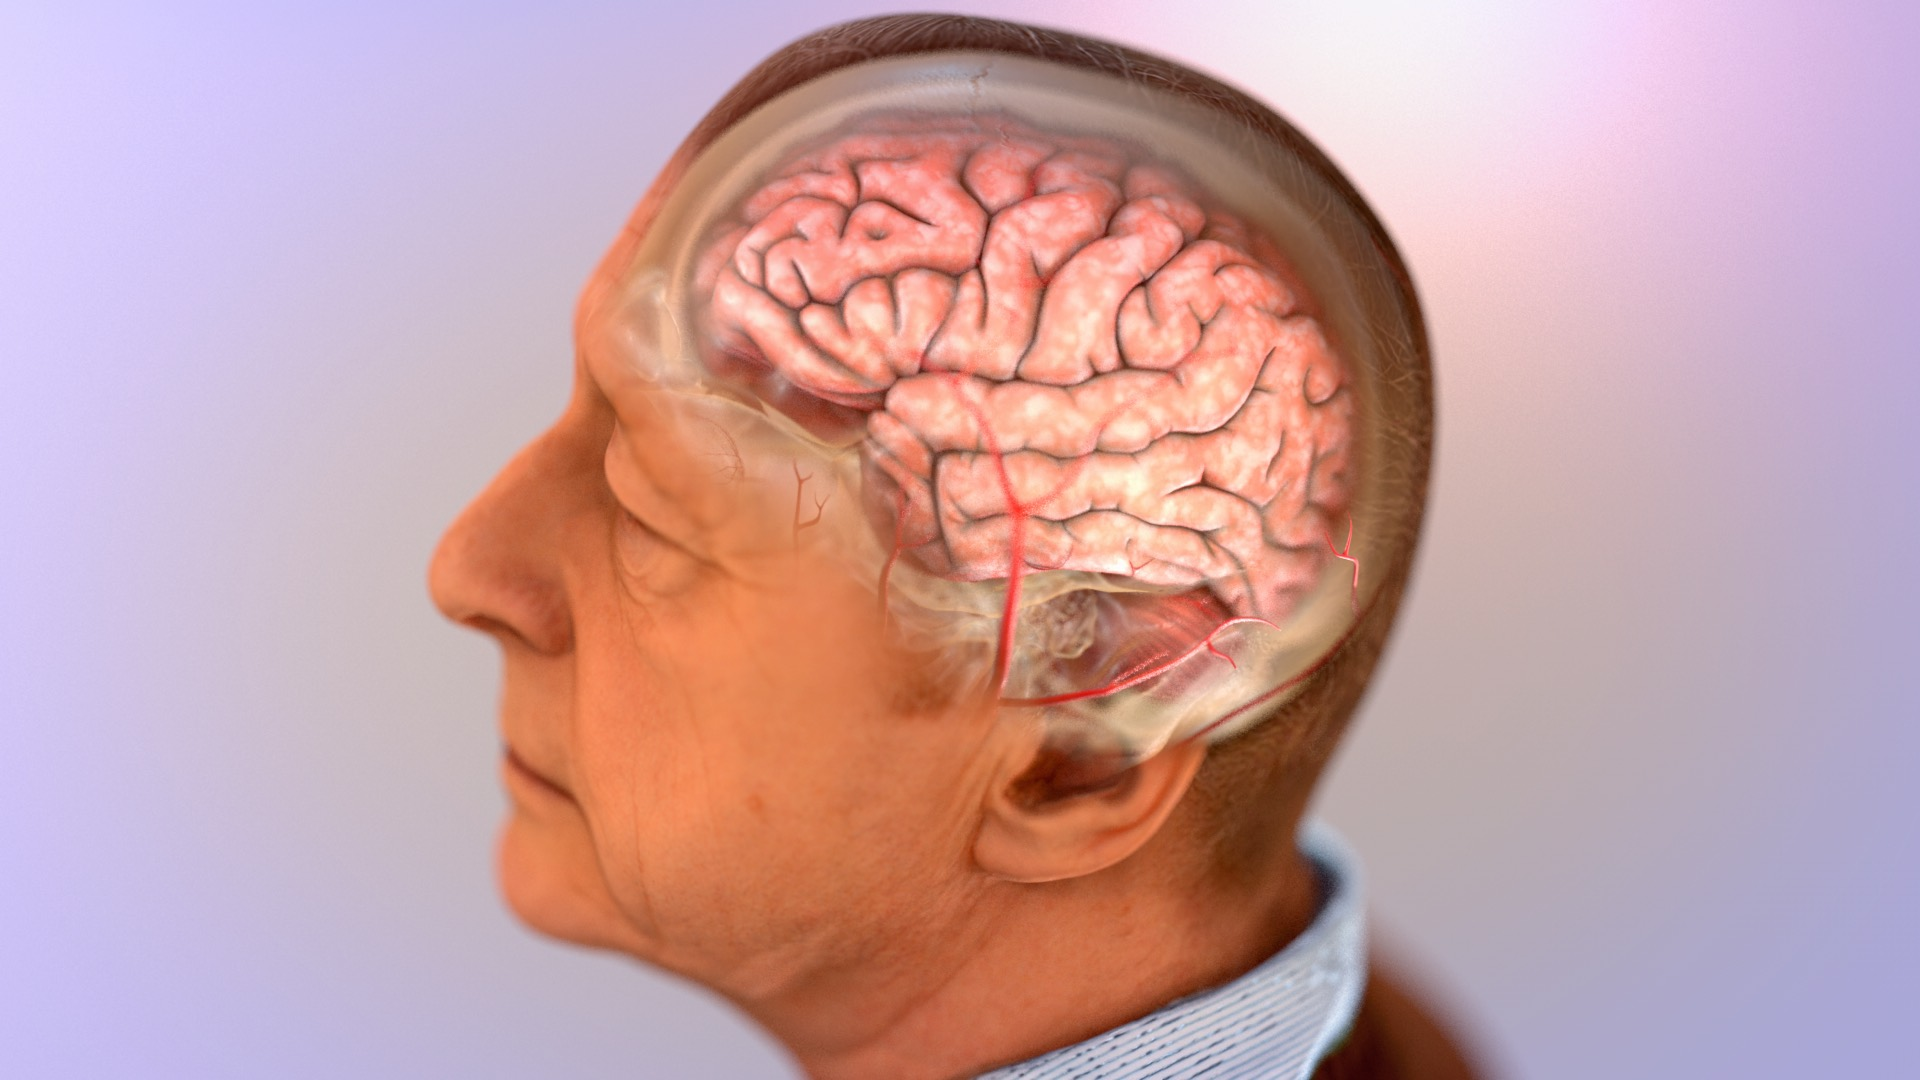 Image showing brain shrinkage caused by Alzheimer's.